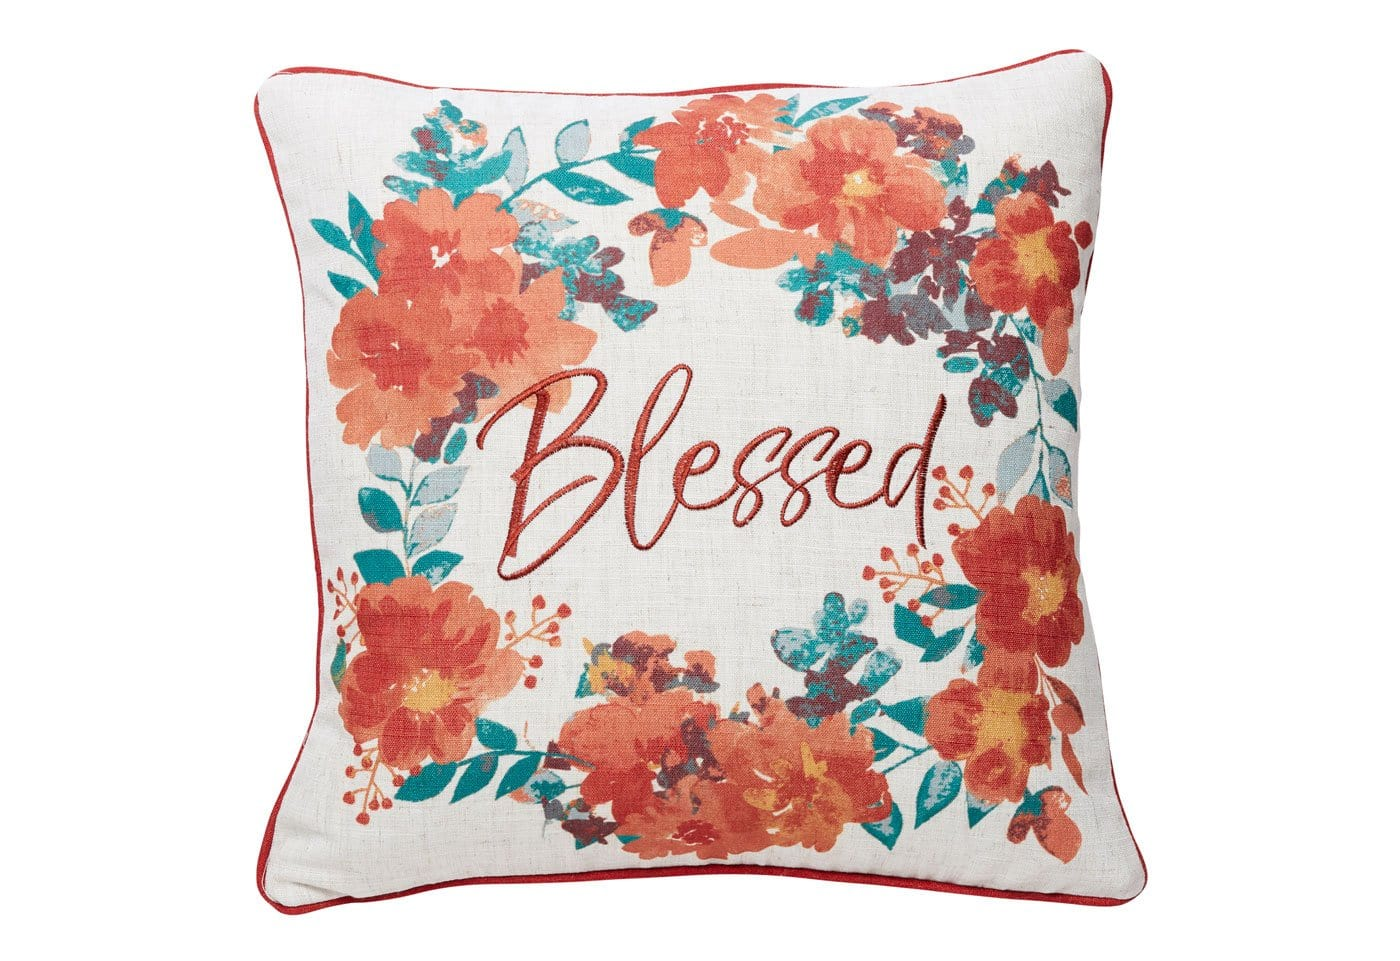 Blessed Wreath 18x18 Decorative Pillow Cover